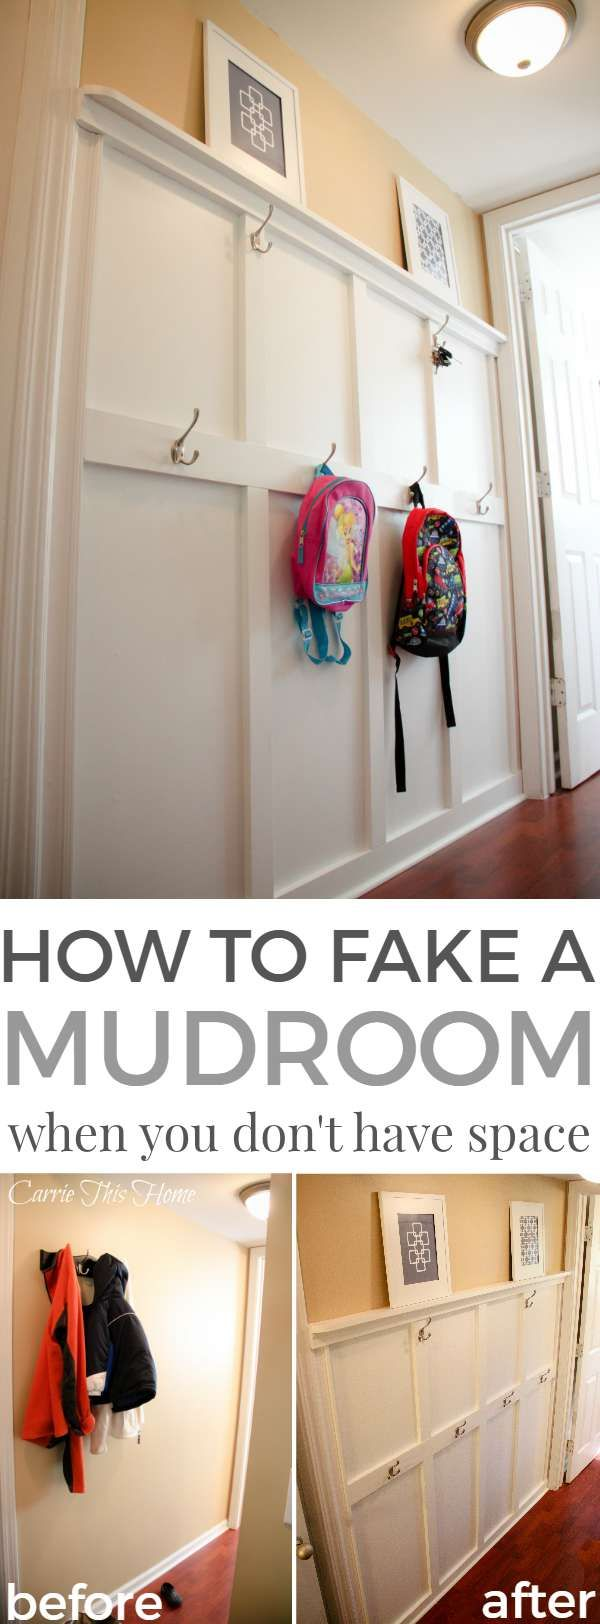 How To Fake A Mudroom {When You Donu0027t Have The Space} Part 89